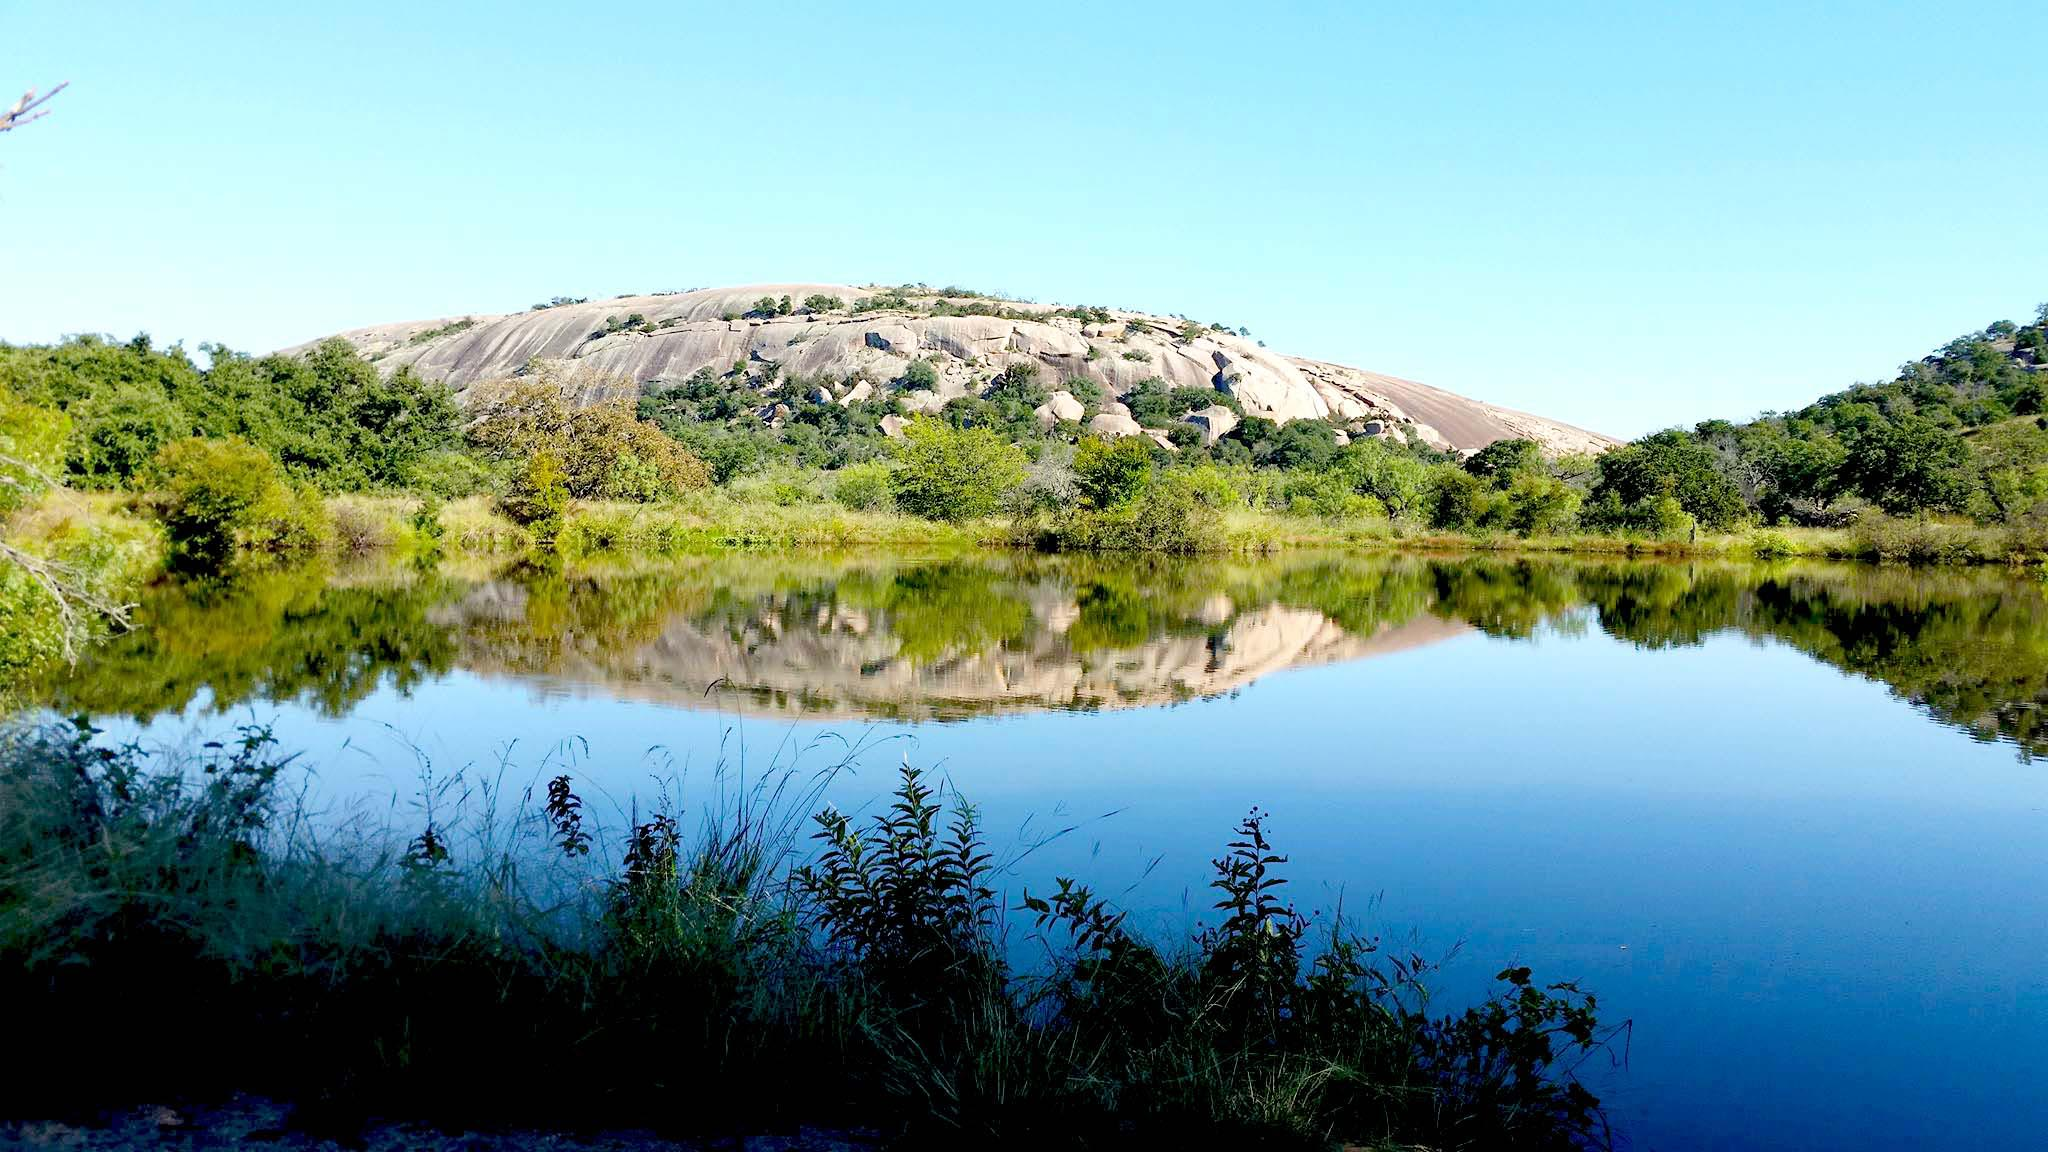 Image of Enchanted Rock State Natural Area